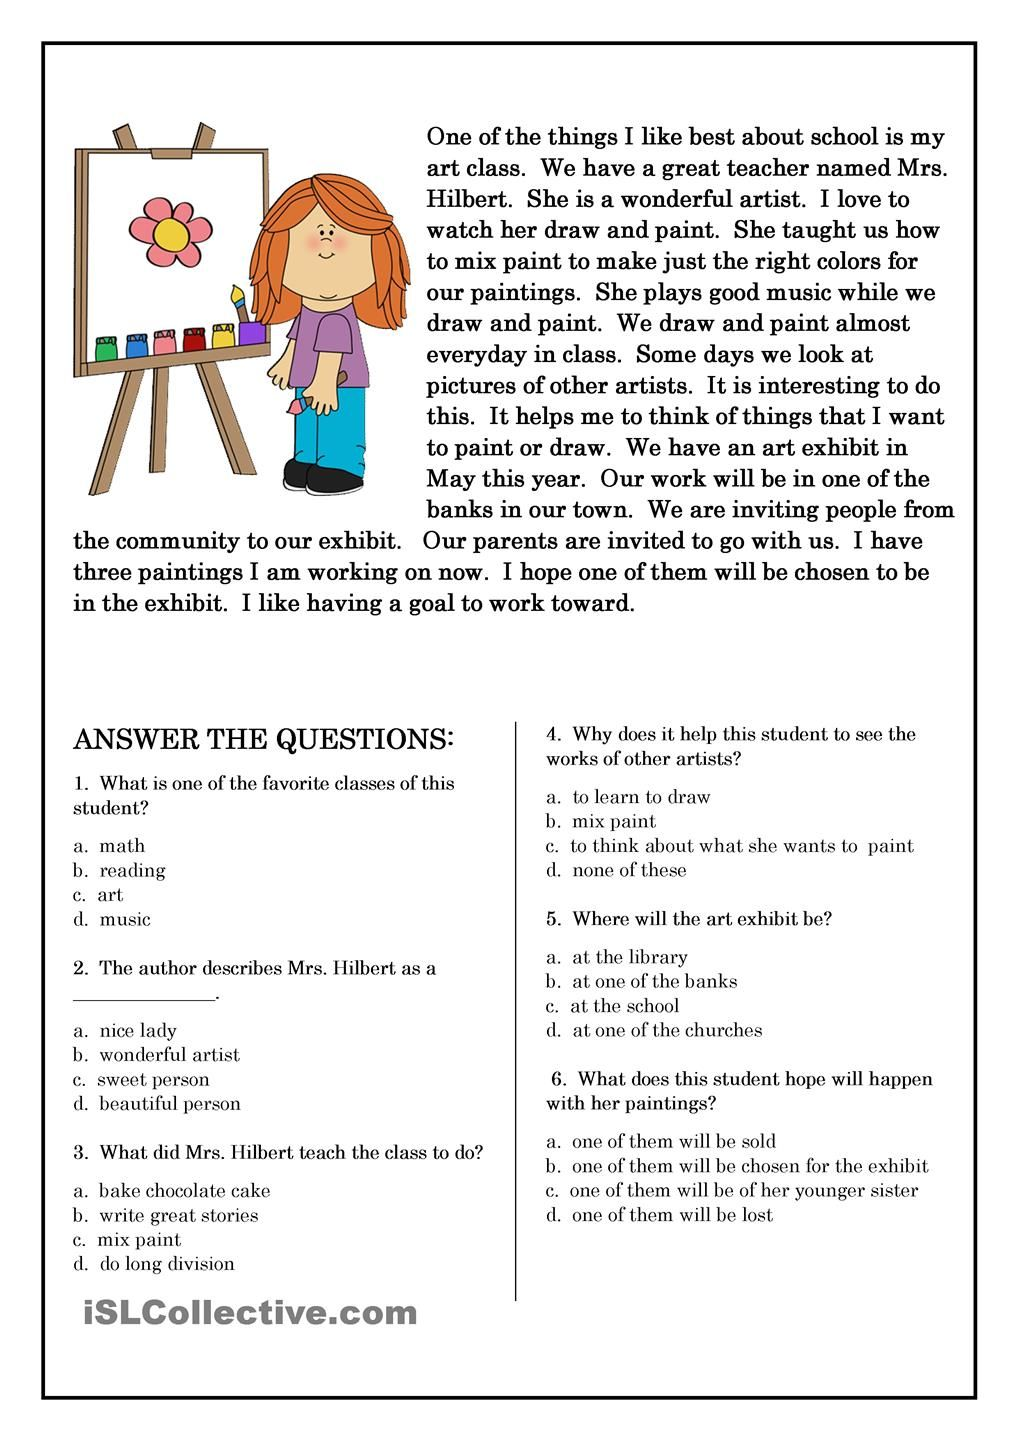 Worksheet Esl Reading 78 images about reading comprehension on pinterest simple sentences grade 1 and english short stories